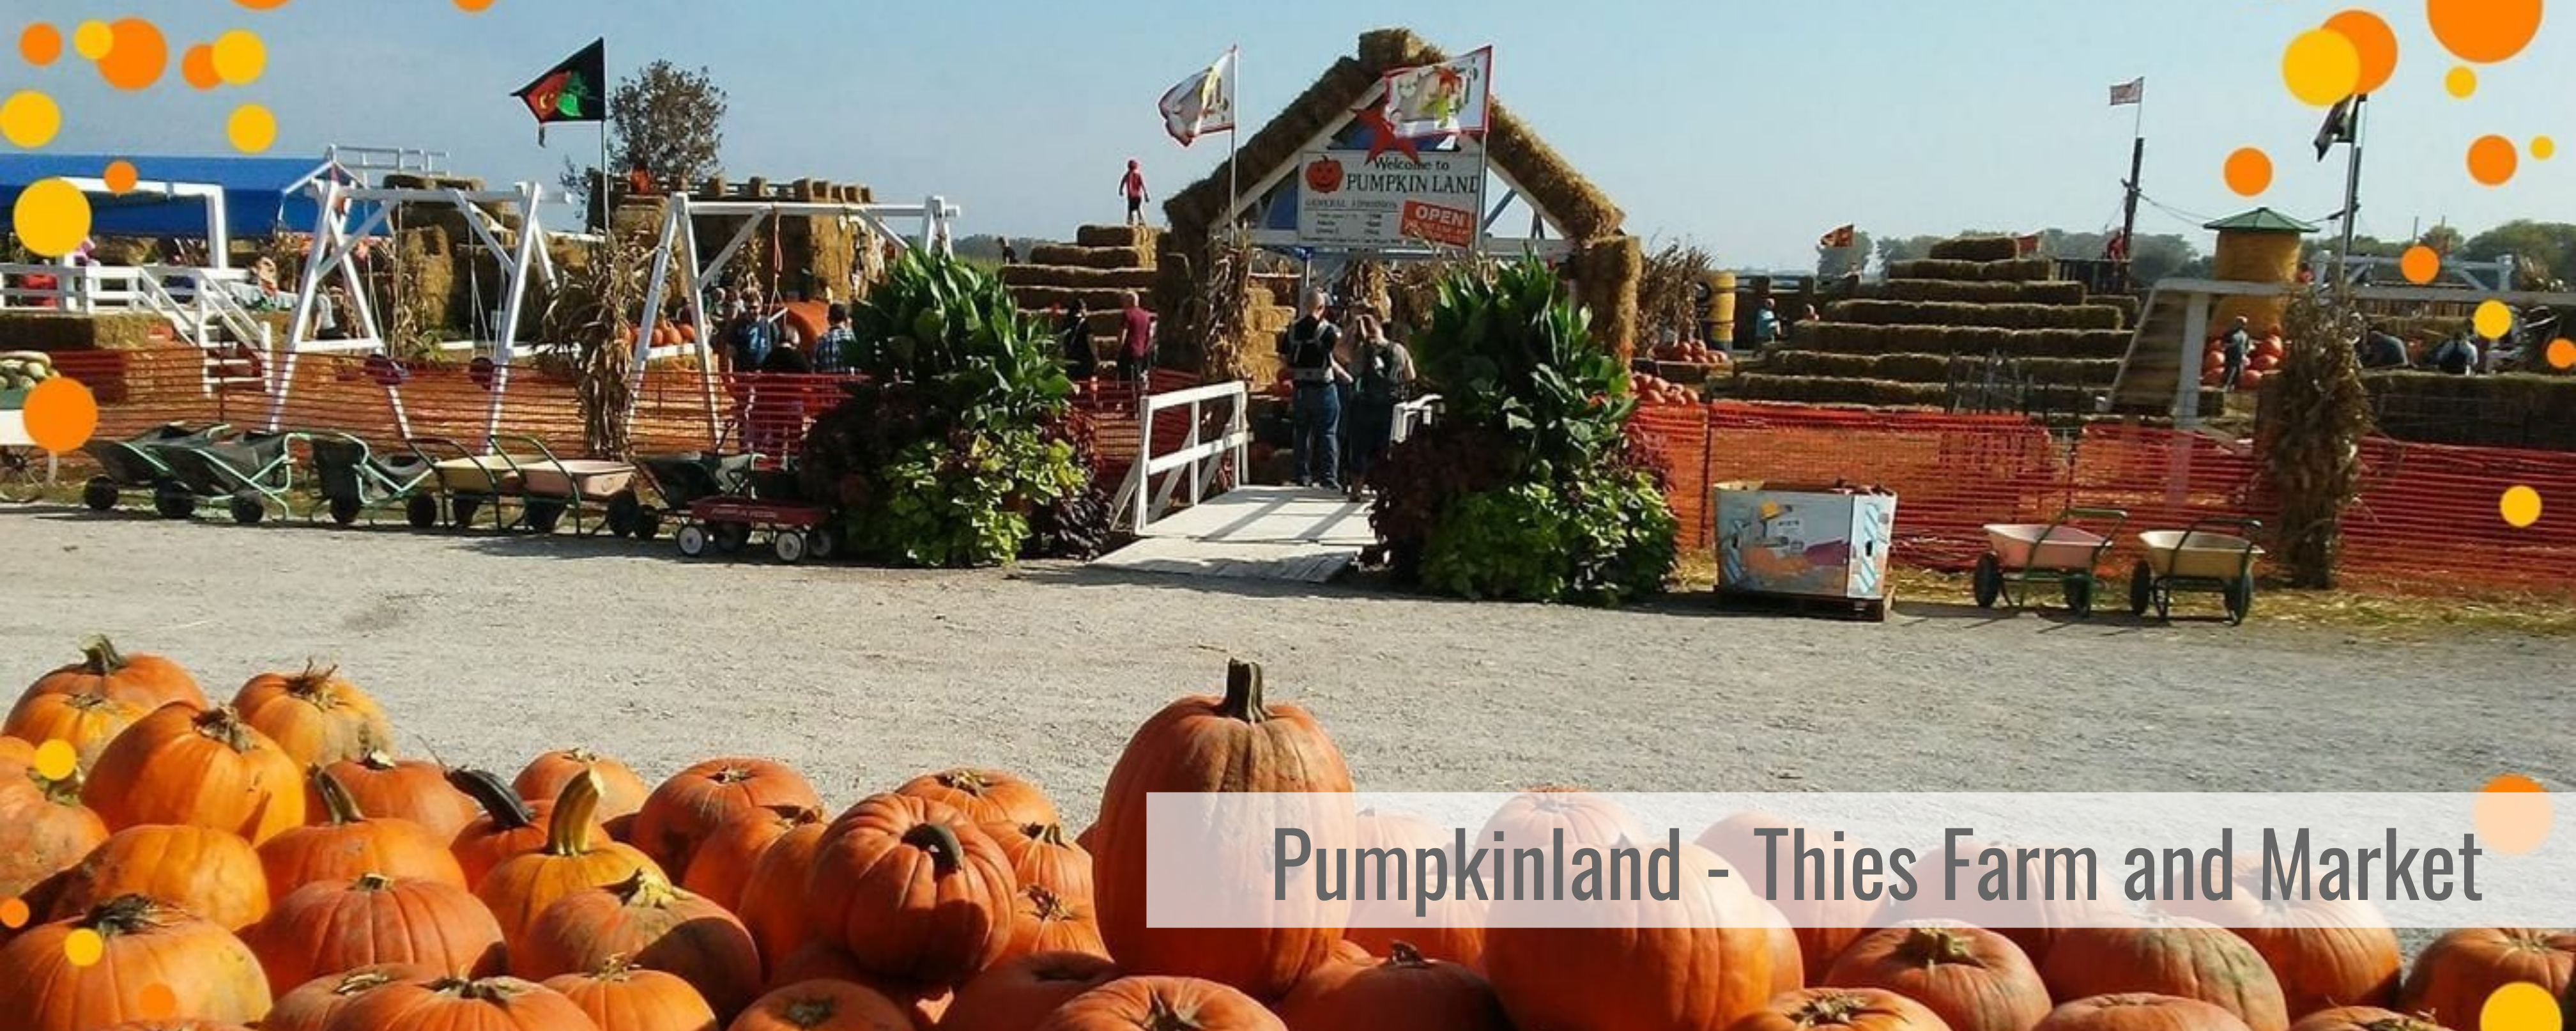 Thies Farm and Market Pumpkinland